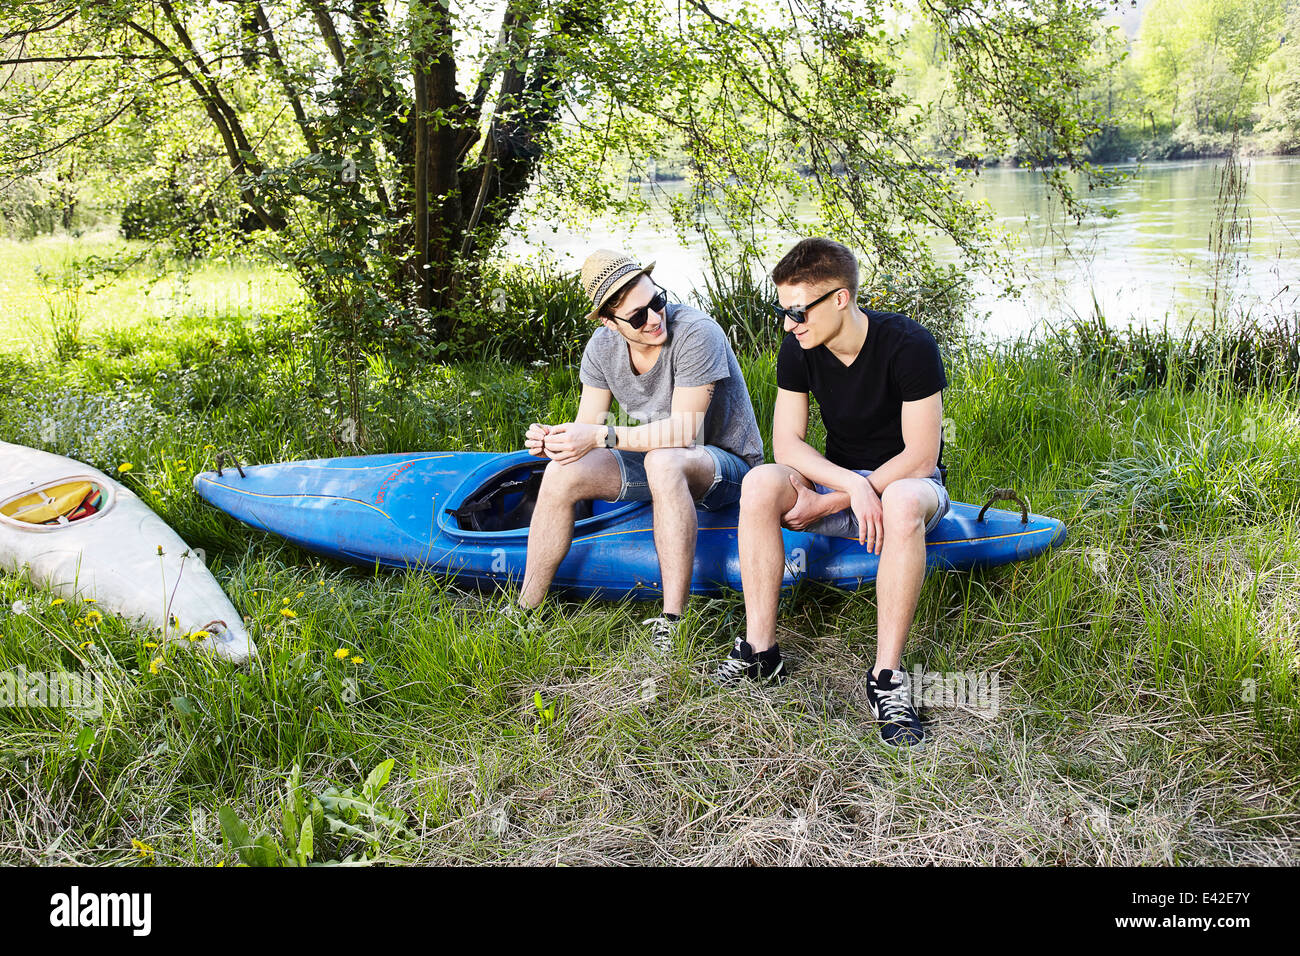 Two young men sitting on a canoe - Stock Image